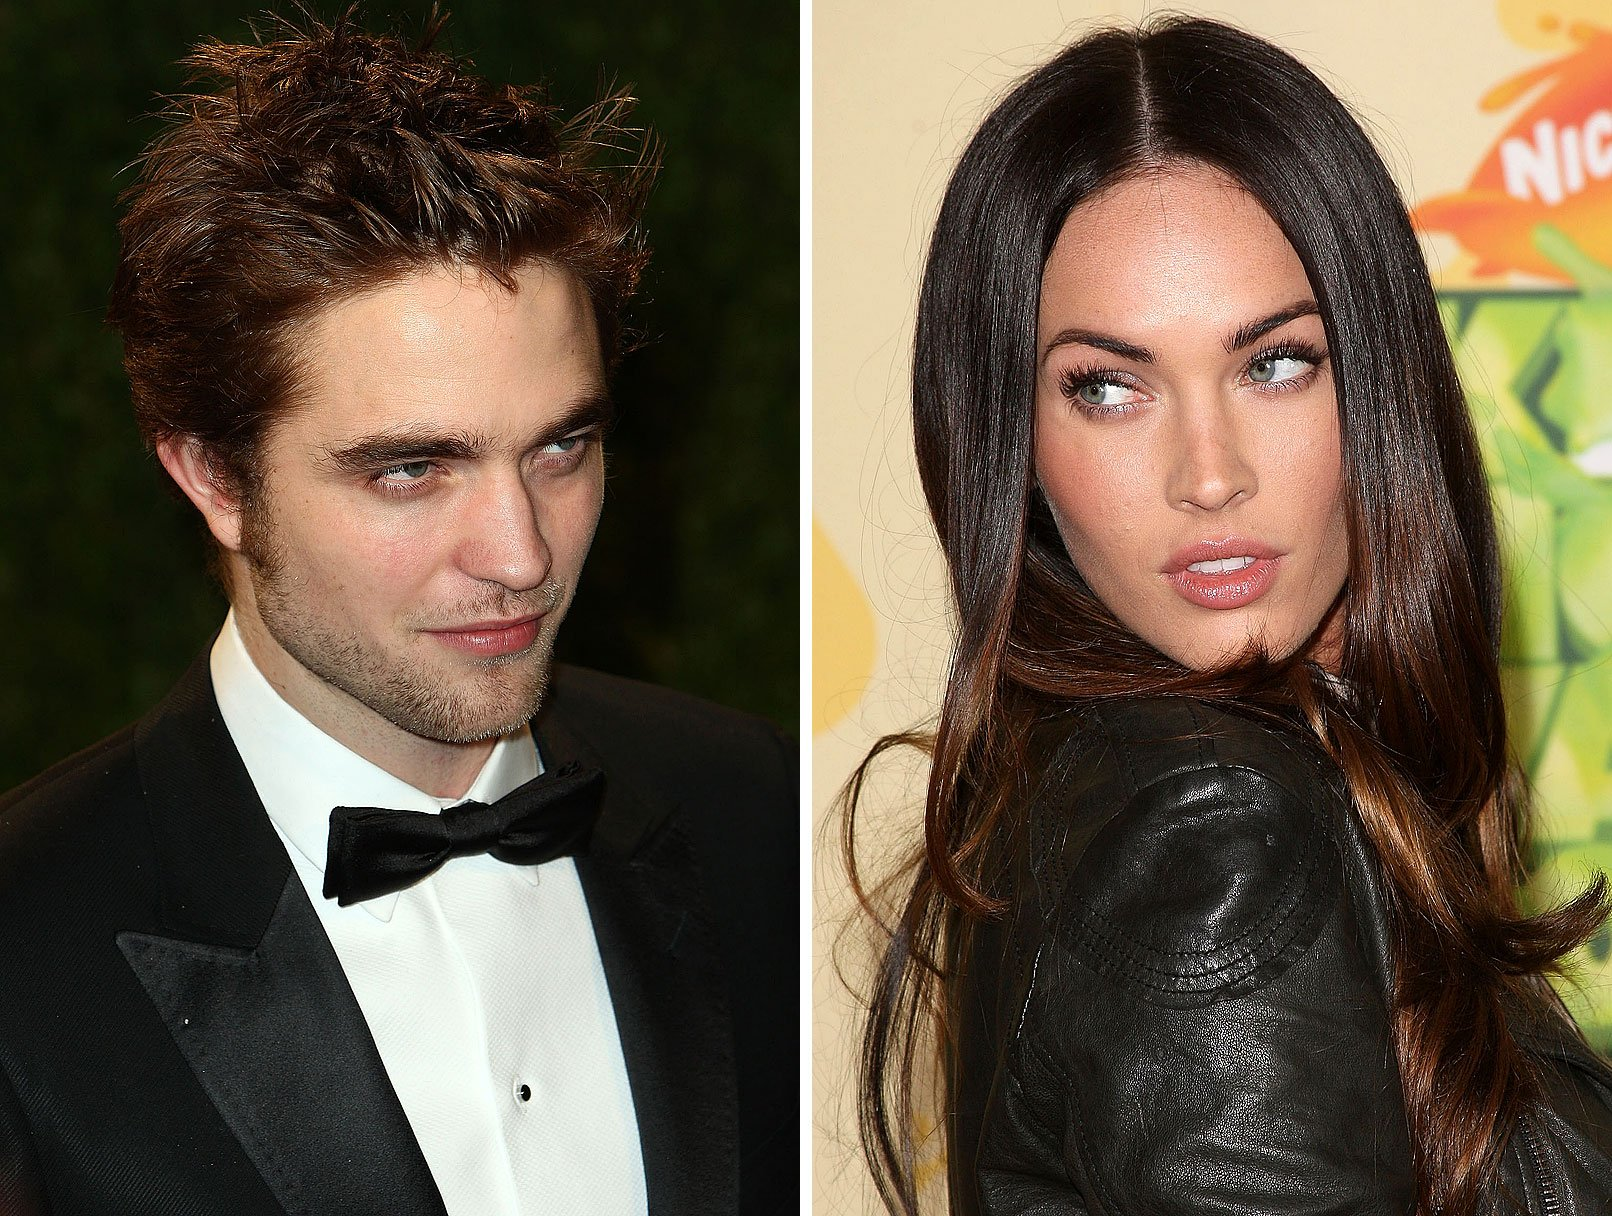 Megan Fox Denies RPattz Hookup Rumors